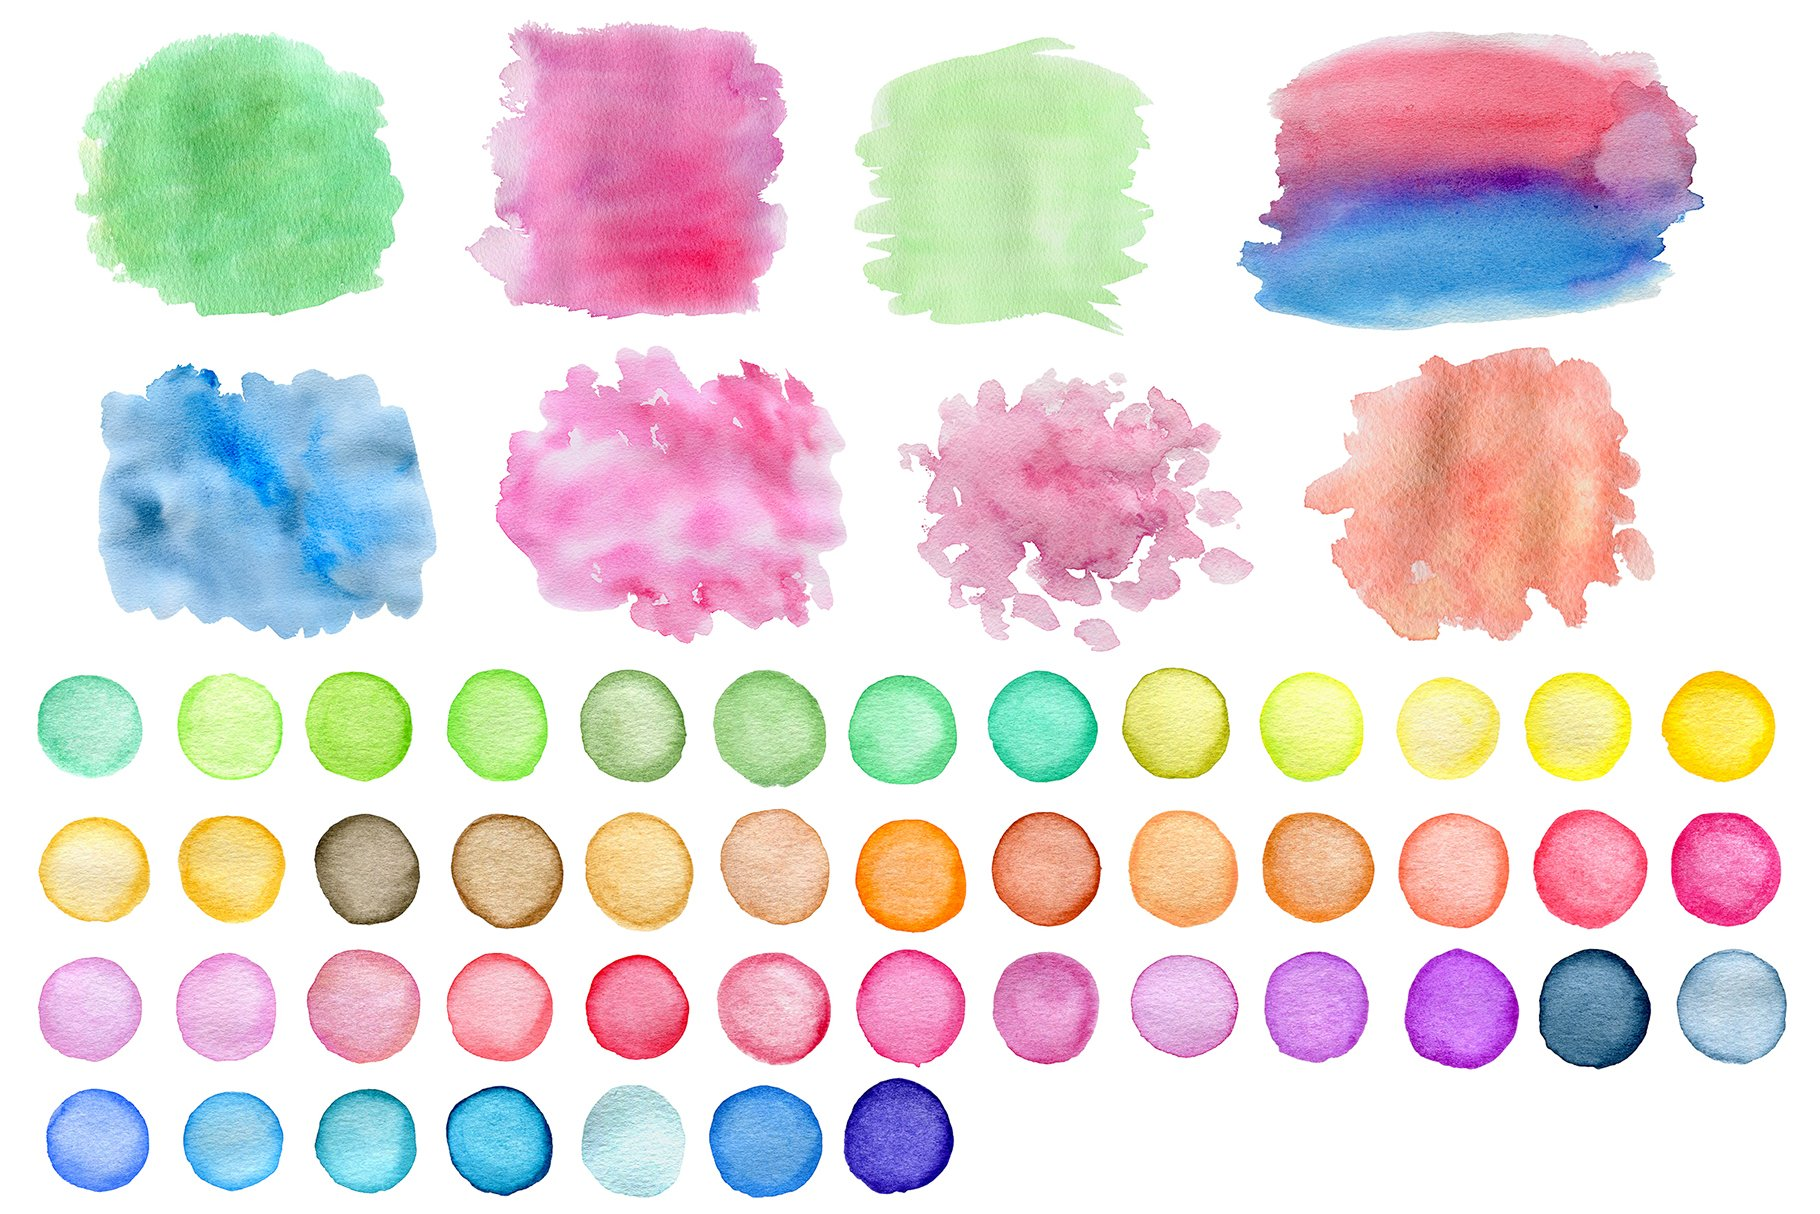 Watercolor Blots and Patterns example image 3